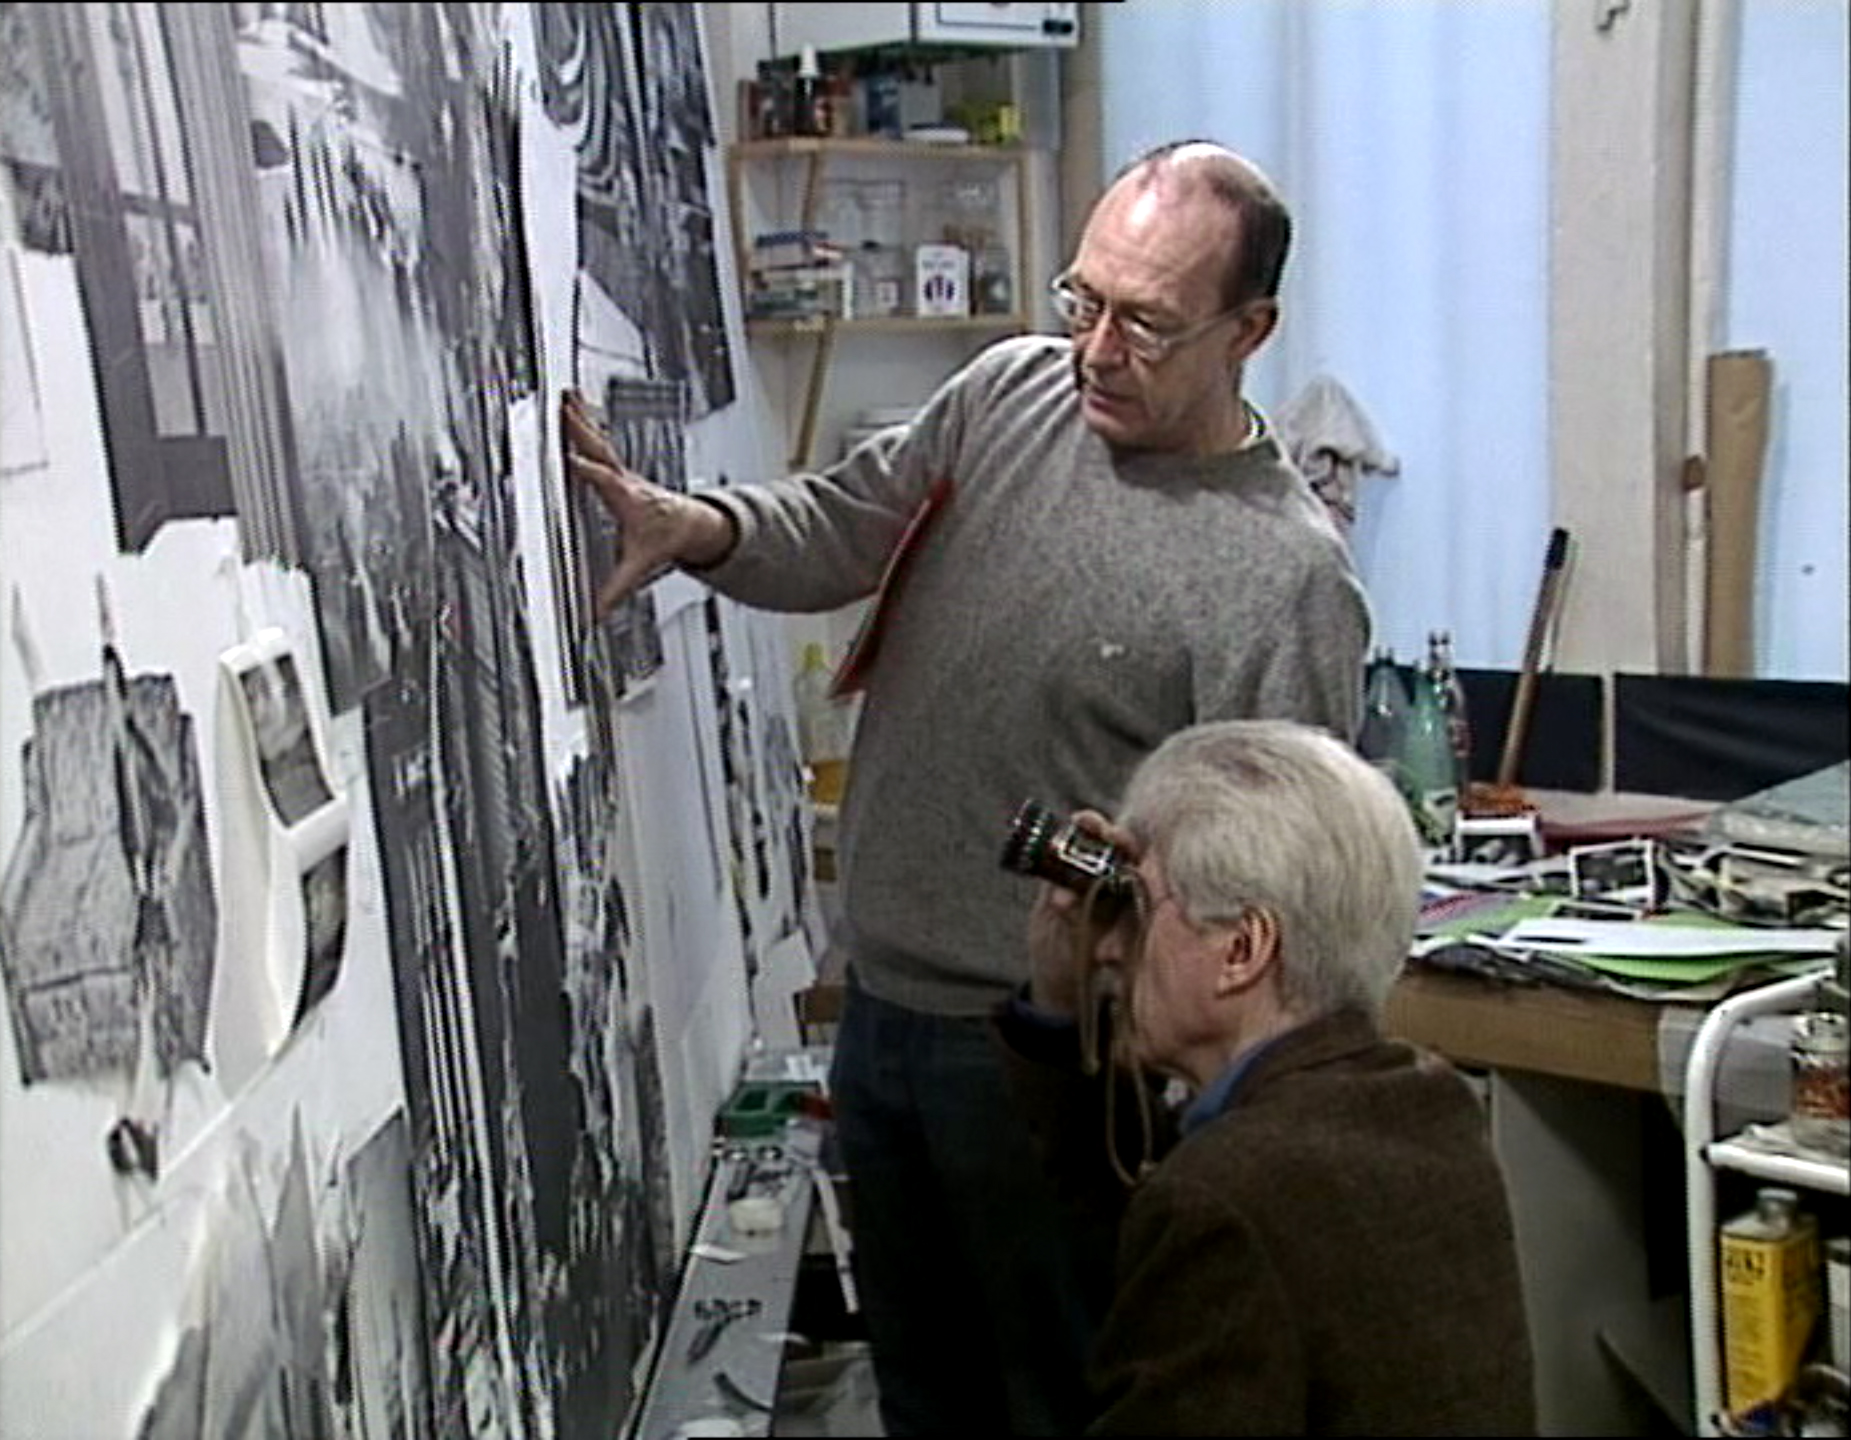 Guy Peellaert and Alain Resnais examine details of preparatory sketches for the Gershwin Frieze in Paris, in a still from the documentary short on the making of the Frieze by Gilles Nadeau.